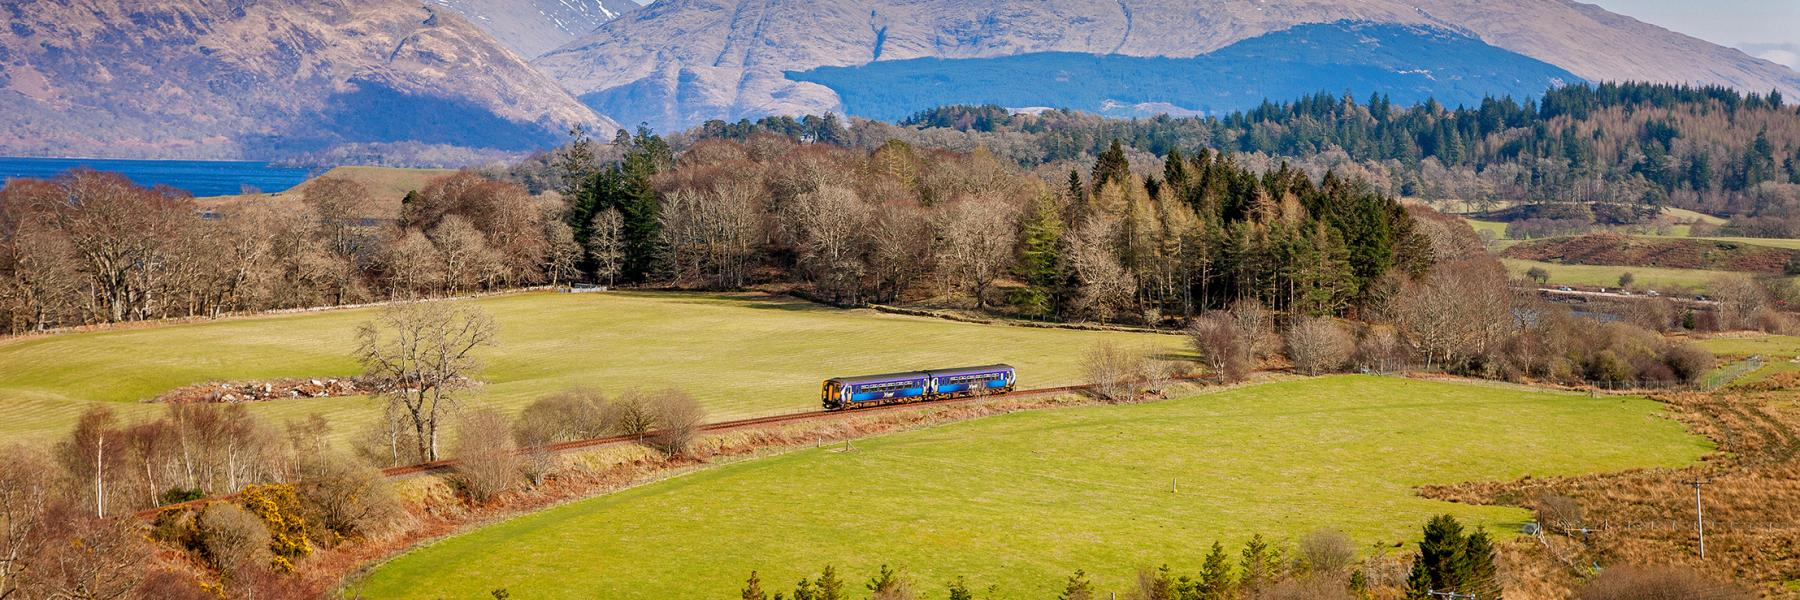 Train on the West Highland Line with mountains in the background